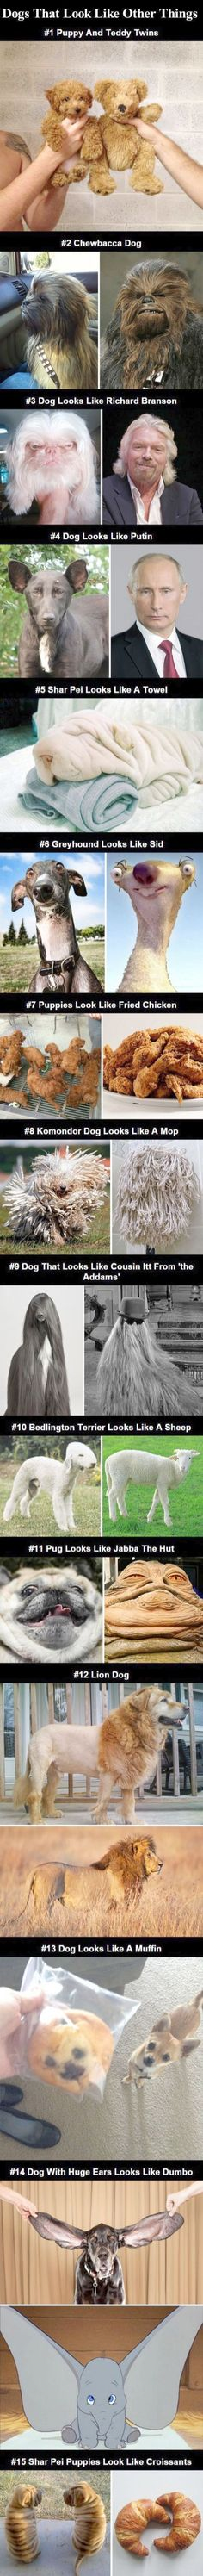 Animal humor dog - Dogs That Look Like Other Things cute animals dogs adorable dog puppy animal pets lol puppies humor funny pictures funny animals funny pets funny dogs Animal Jokes, Funny Animal Memes, Dog Memes, Cute Funny Animals, Funny Animal Pictures, Cute Baby Animals, Funny Cute, Funny Dogs, Animals And Pets